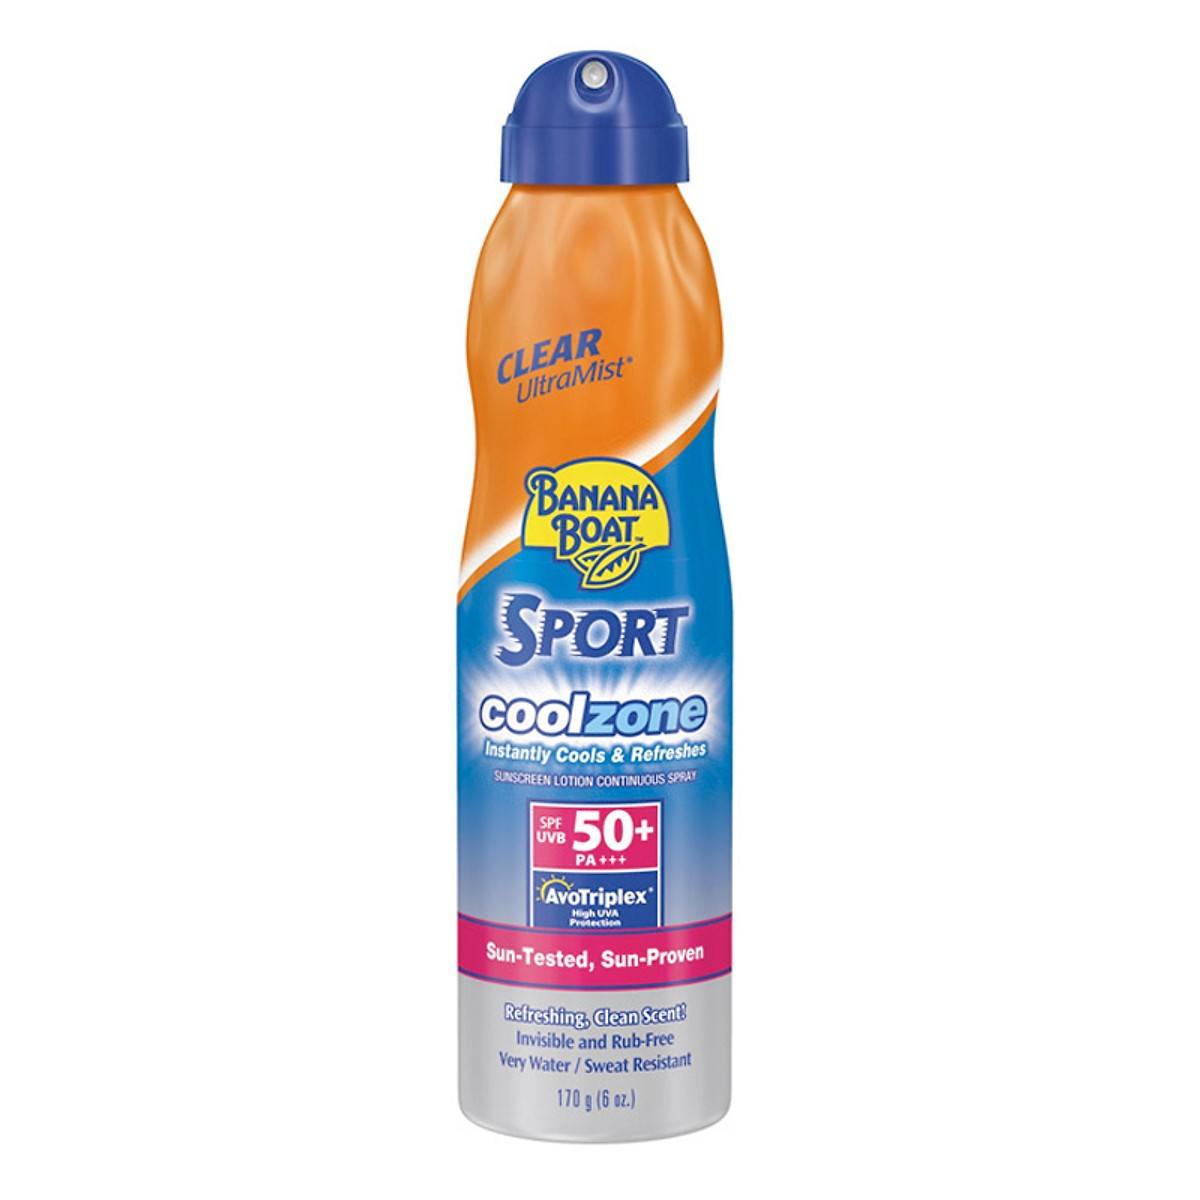 Xịt Chống Nắng Banana Boat Sport Performance Coolzone SPF 50 (170g) - 100801105